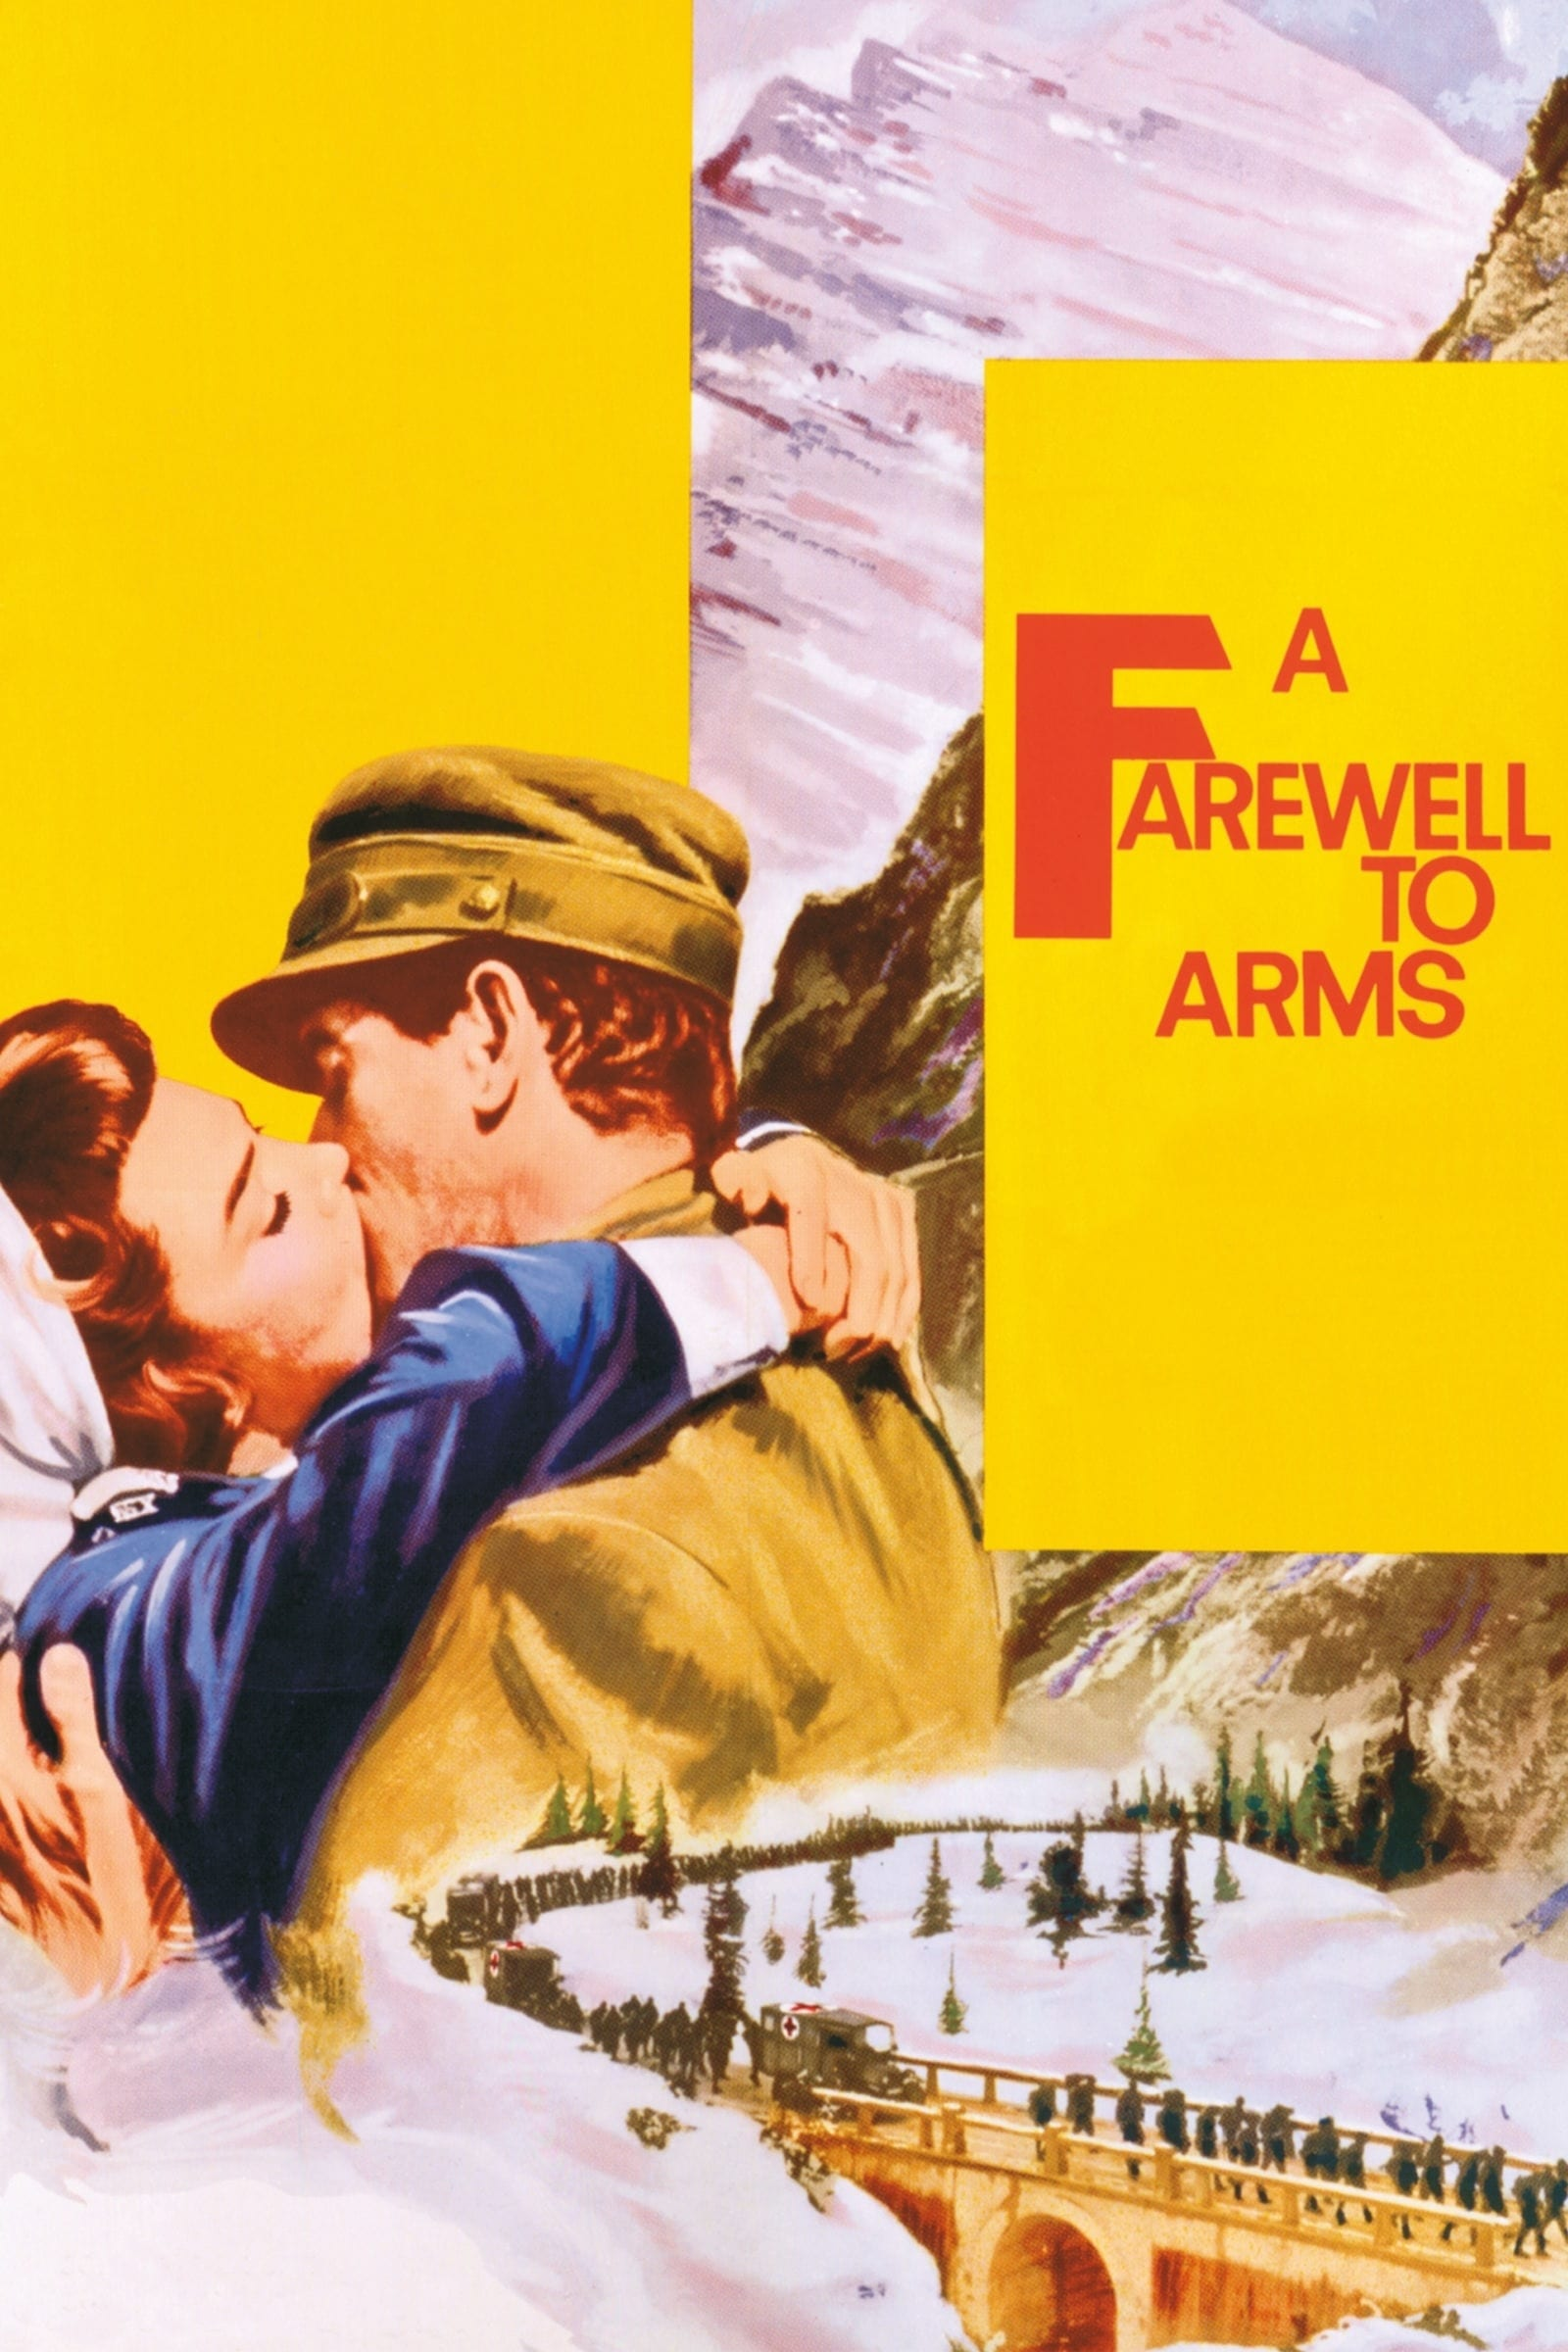 farewell to arms A farewell to arms: theme analysis, free study guides and book notes including comprehensive chapter analysis, complete summary analysis, author biography information, character profiles, theme analysis, metaphor analysis, and top ten quotes on classic literature.